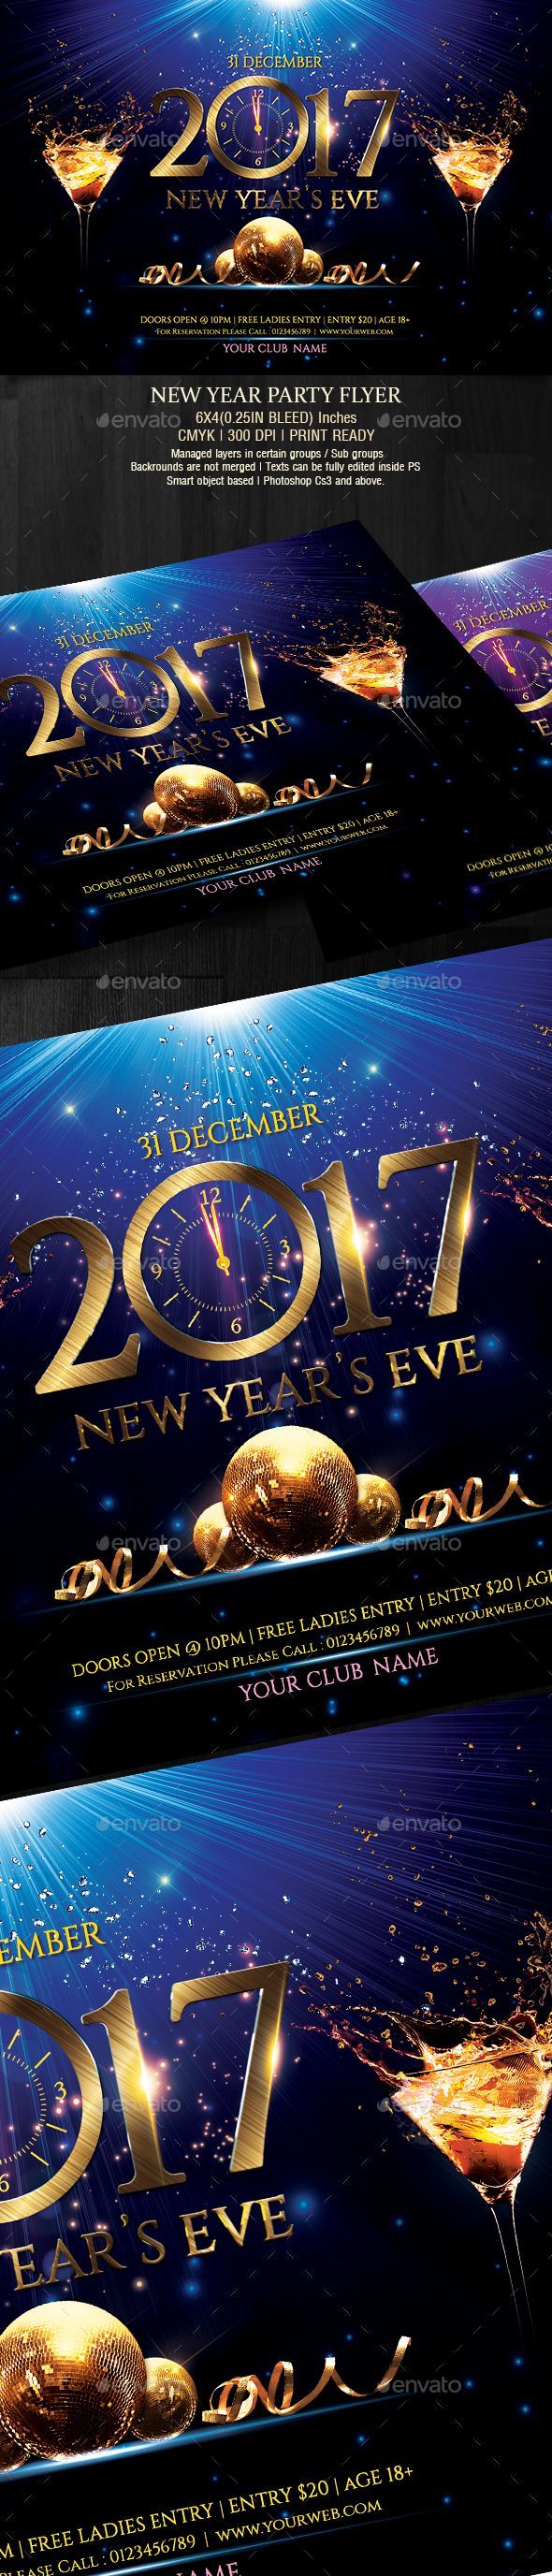 New Year Party Flyer. Download: https://graphicriver.net/item/new-year-party-flyer/19112972?ref=thanhdesign